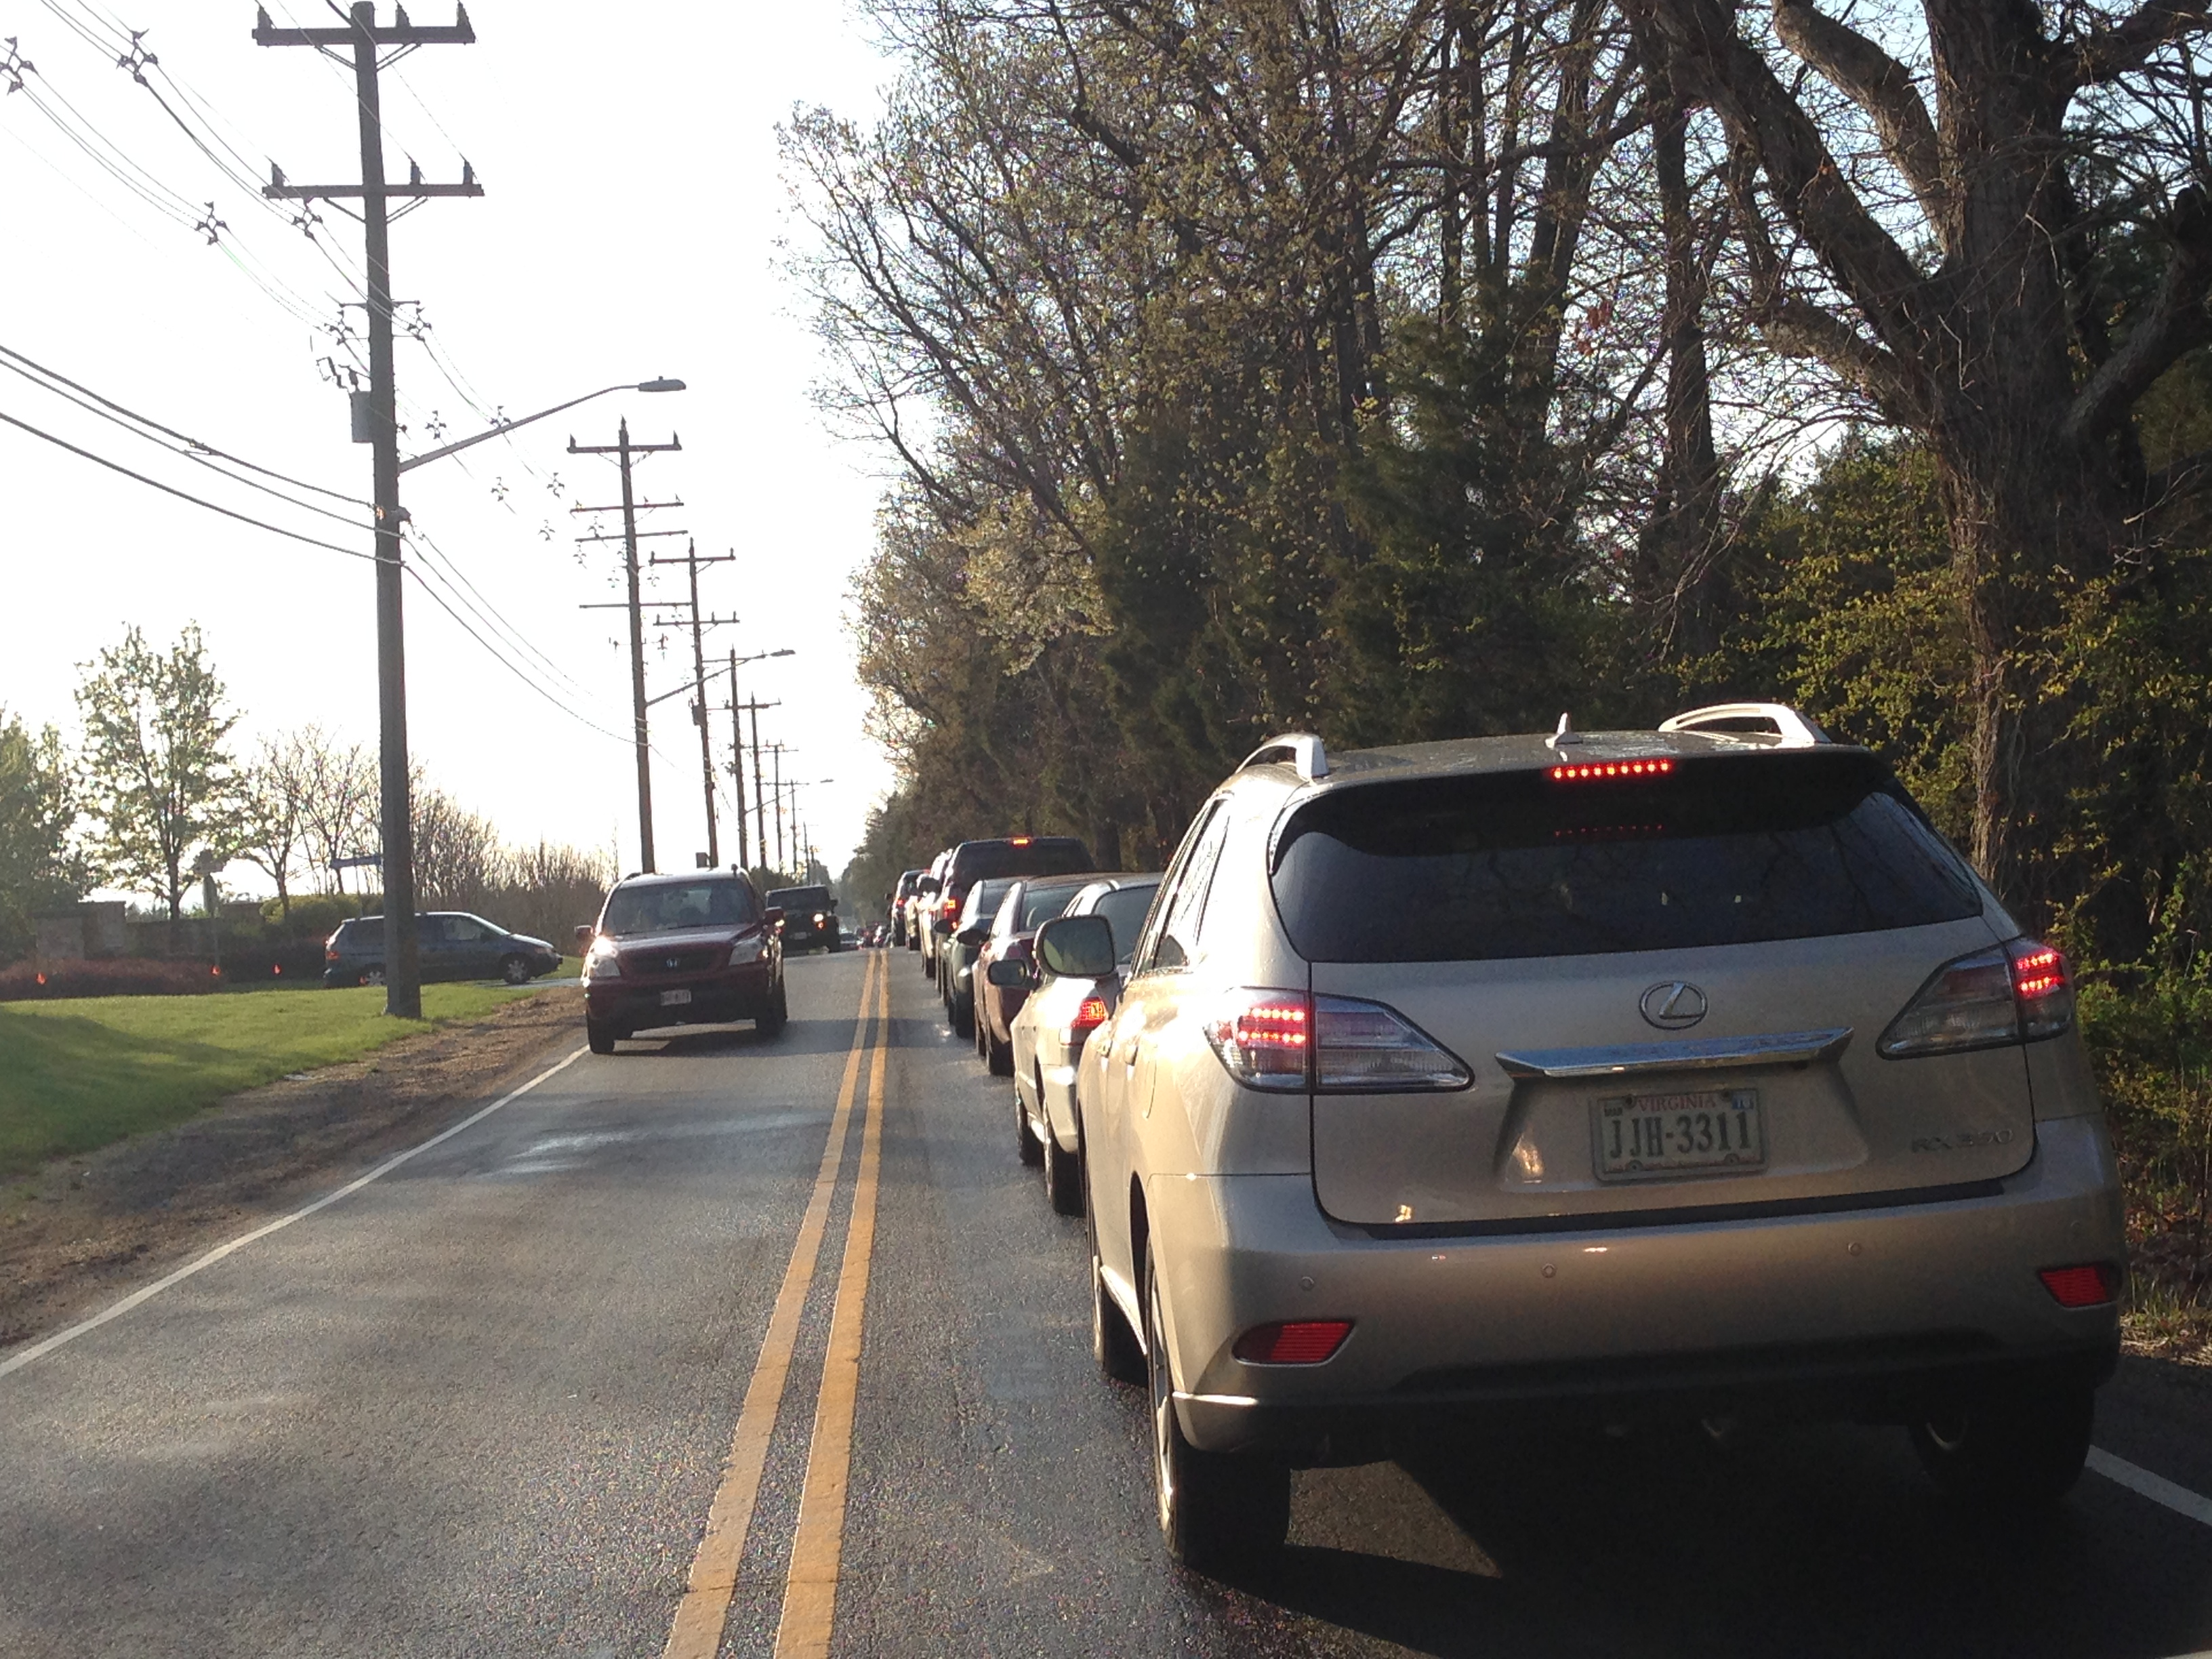 A once-spacious Loudoun County area tries to deal with traffic tie-ups